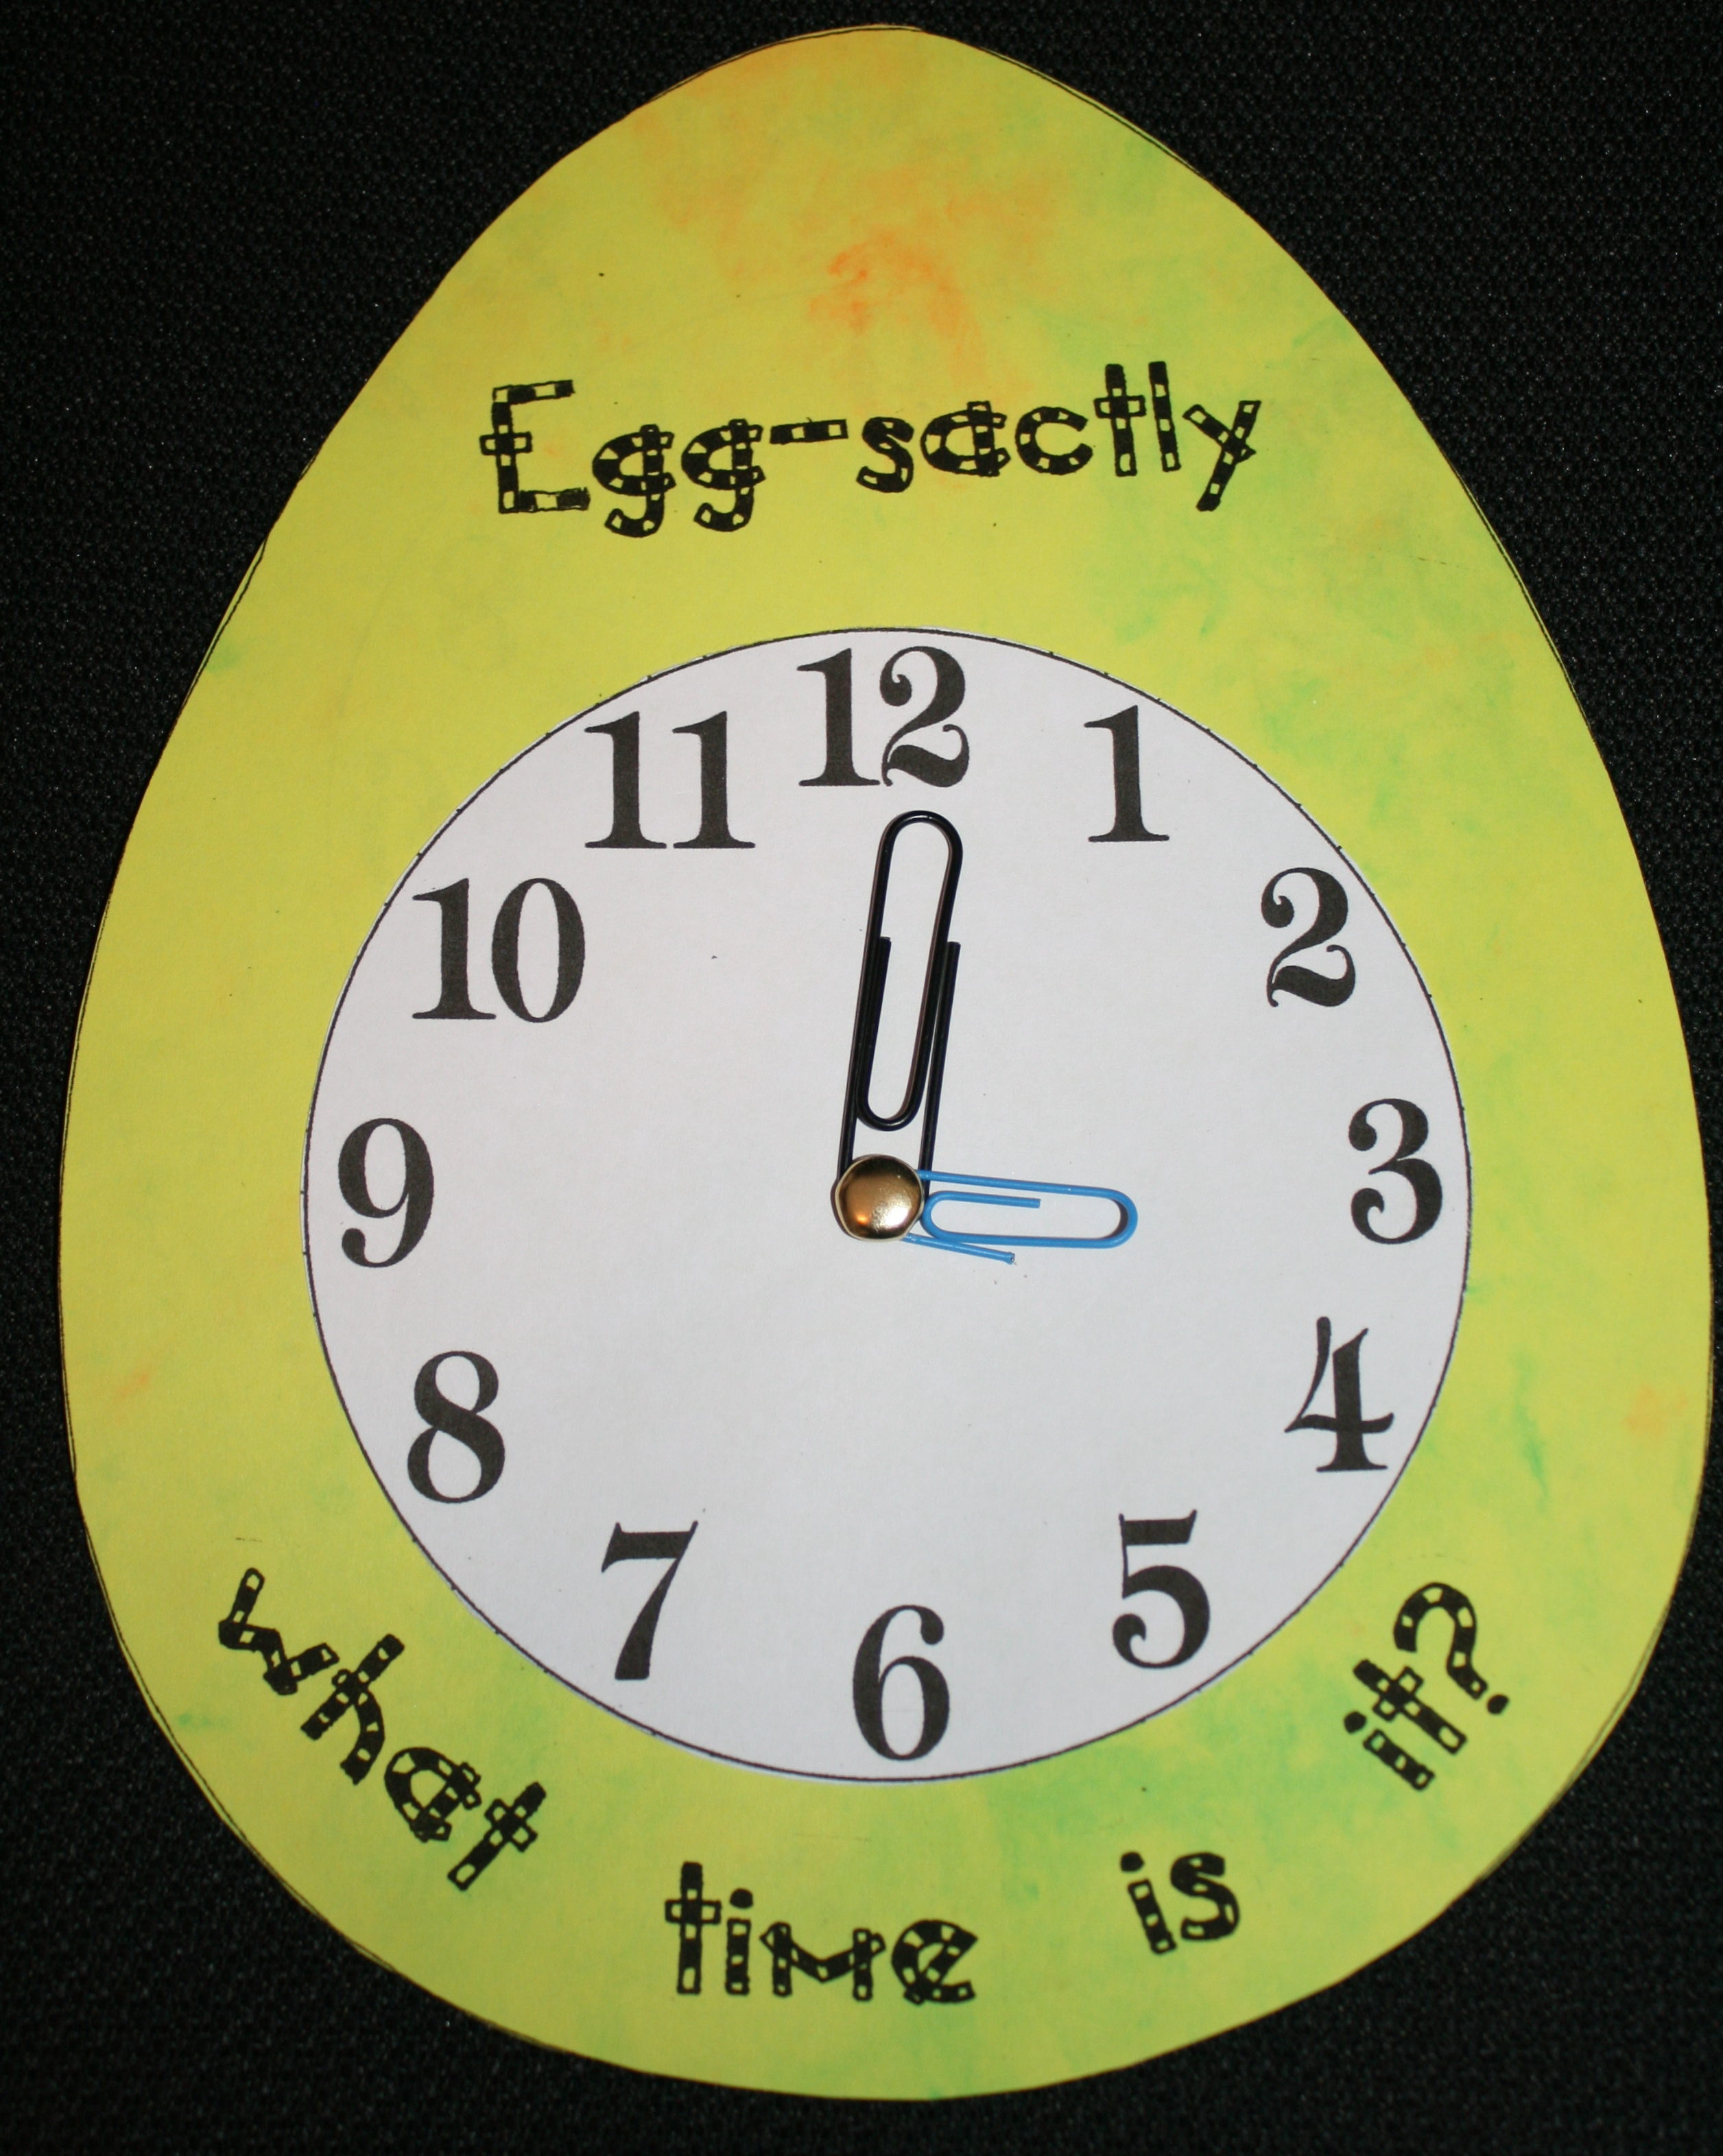 egg clock, clock template, clock pattern, teaching time, time activities, time cards, time flashcards, digital time, analog time, digital time flashcards, analog time flashcards, activities for teaching time, time games, clock games,